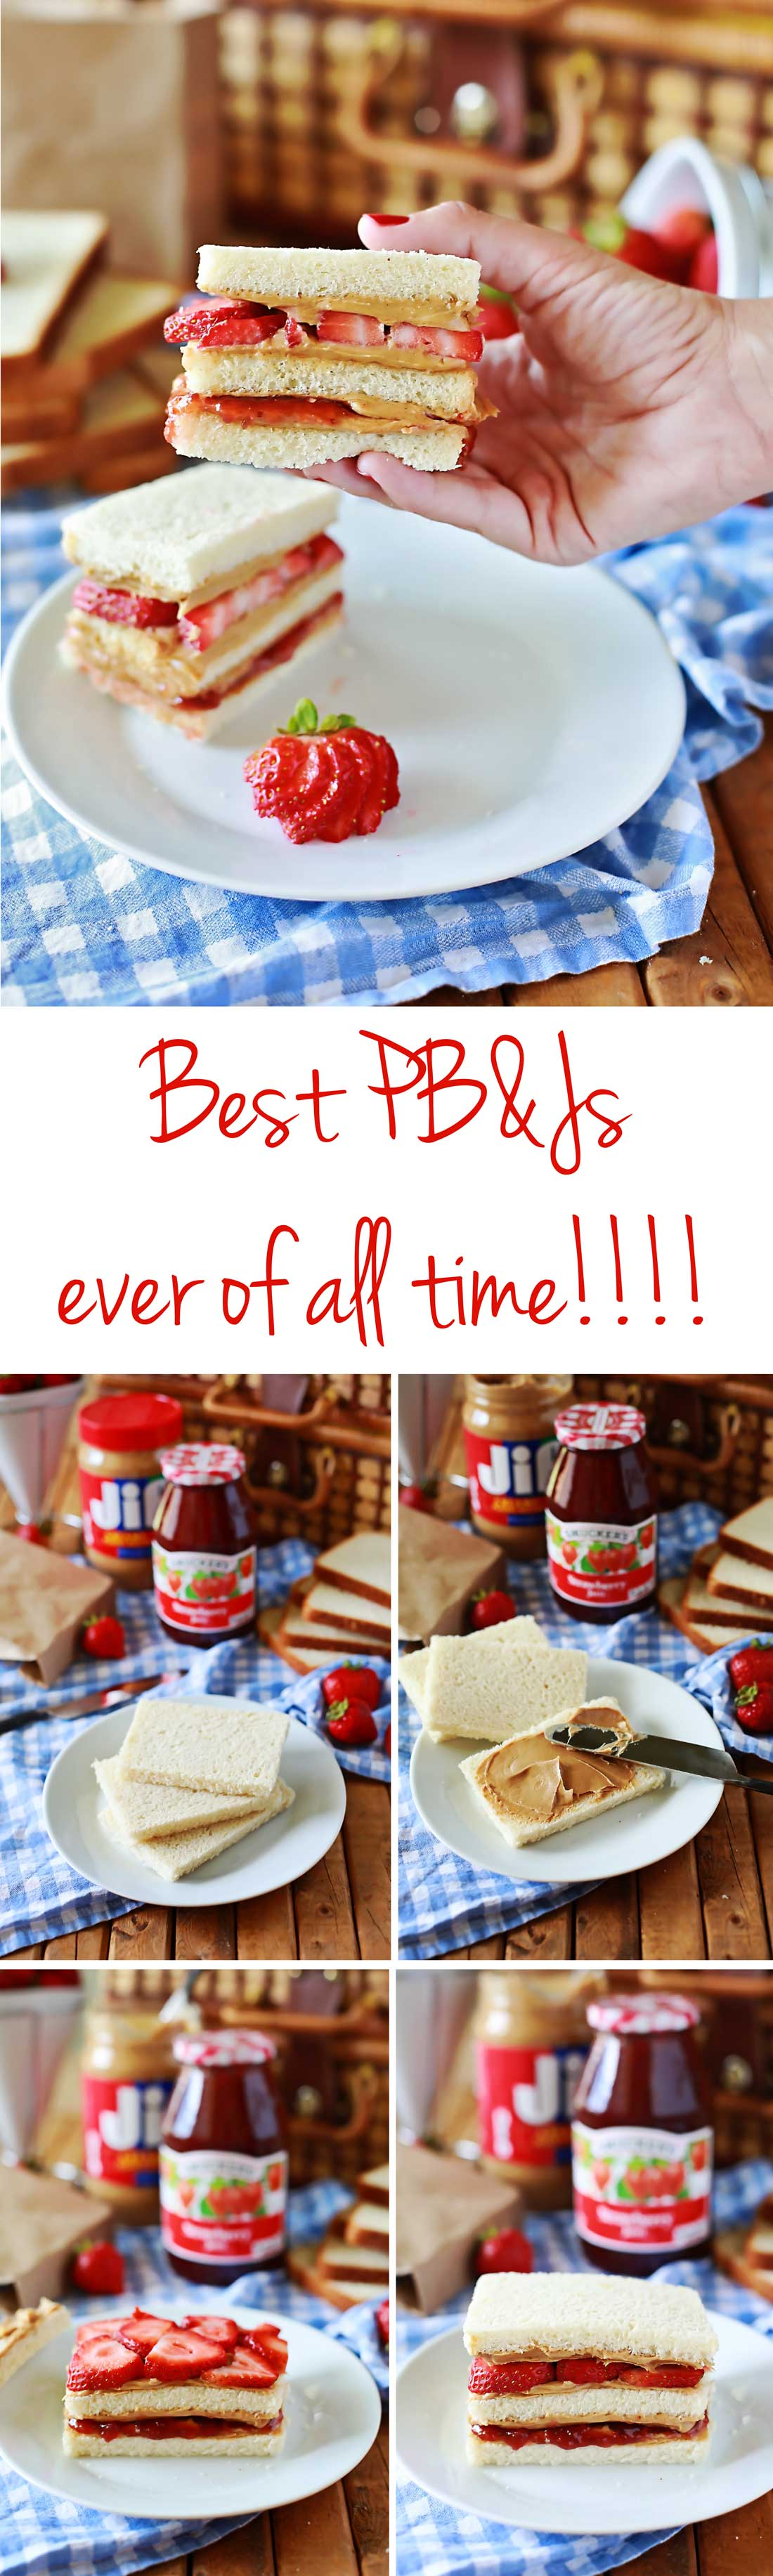 The Ultimate PB&J sandwich by Flirting with Flavor. #PBlove #ad Power their day!